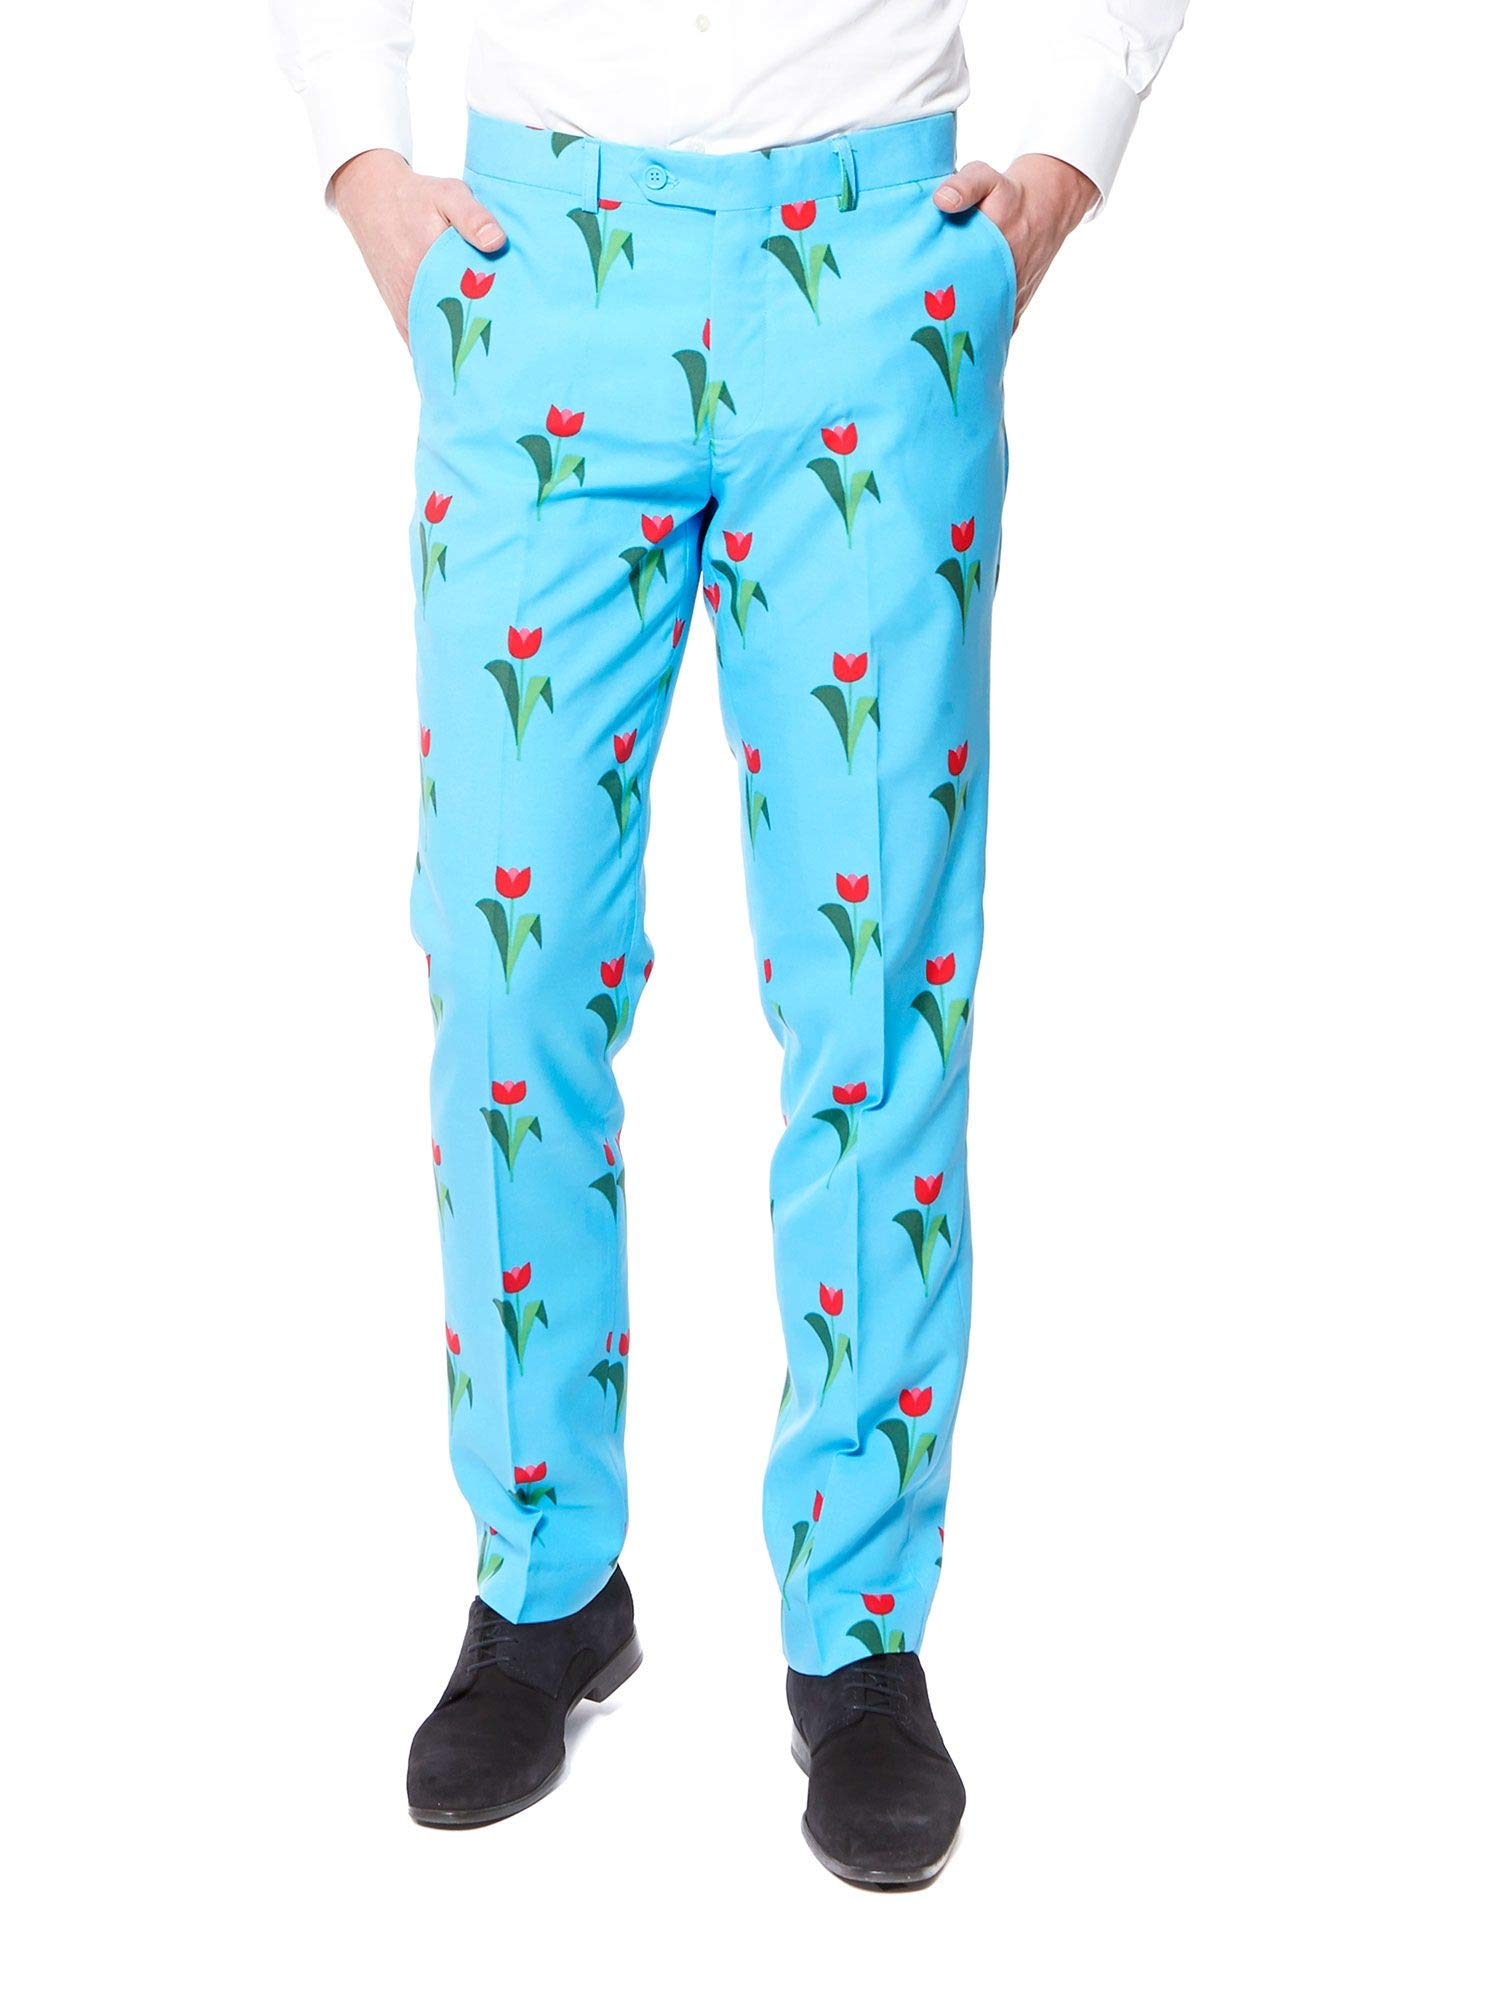 OppoSuits Funny Everyday Suits for Men Comes with Jacket, Pants and Tie in Funny Designs by OppoSuits (Image #5)